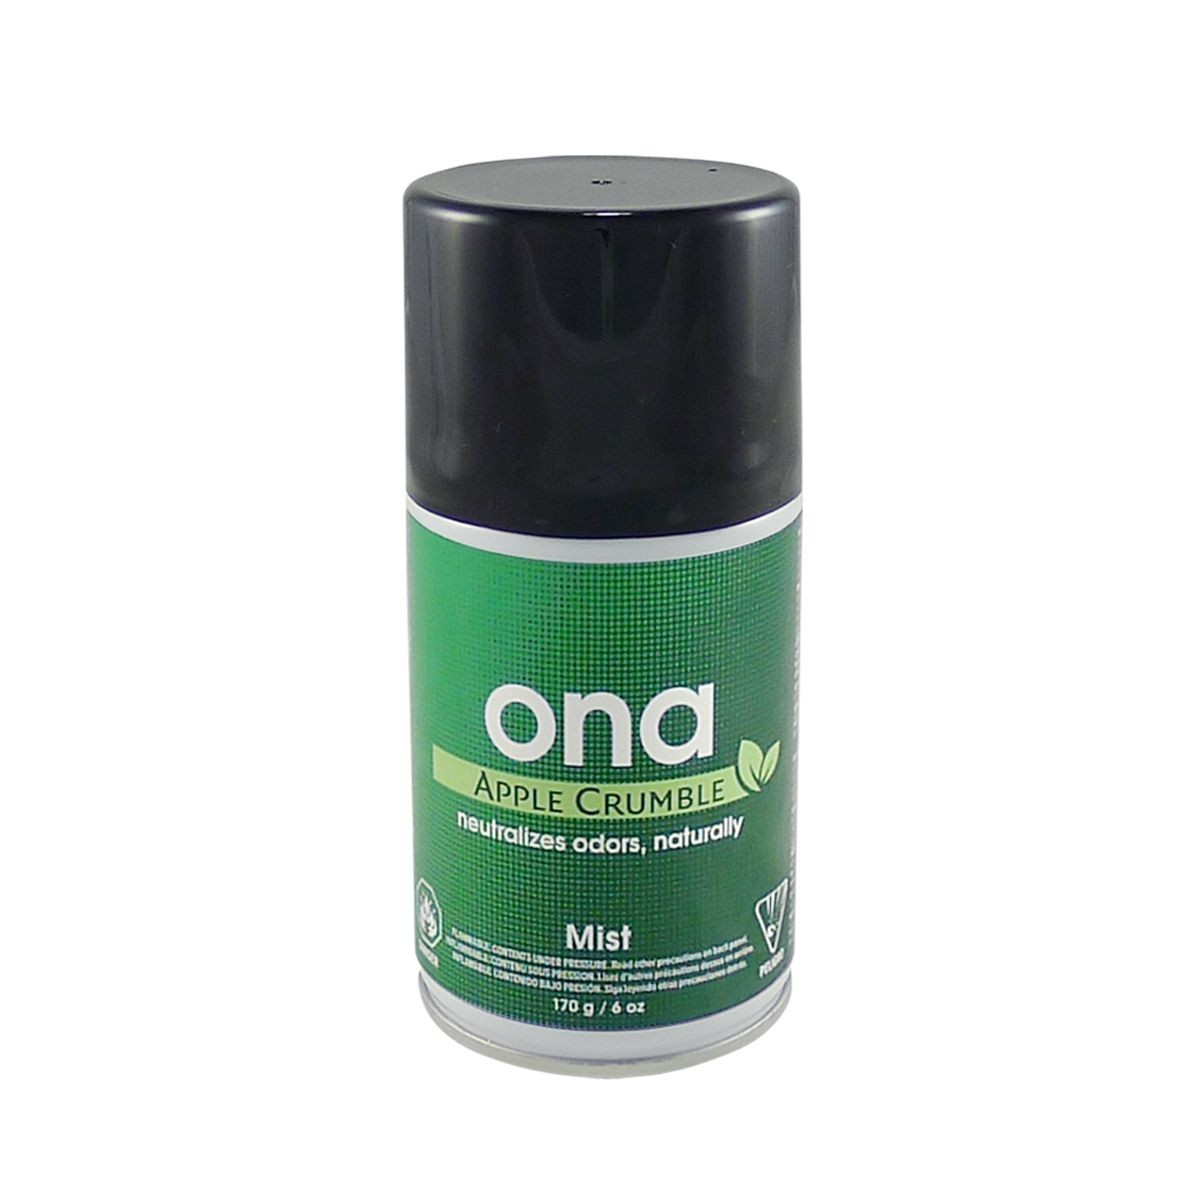 Ona Mist Aerosol 170g - Apple Crumble